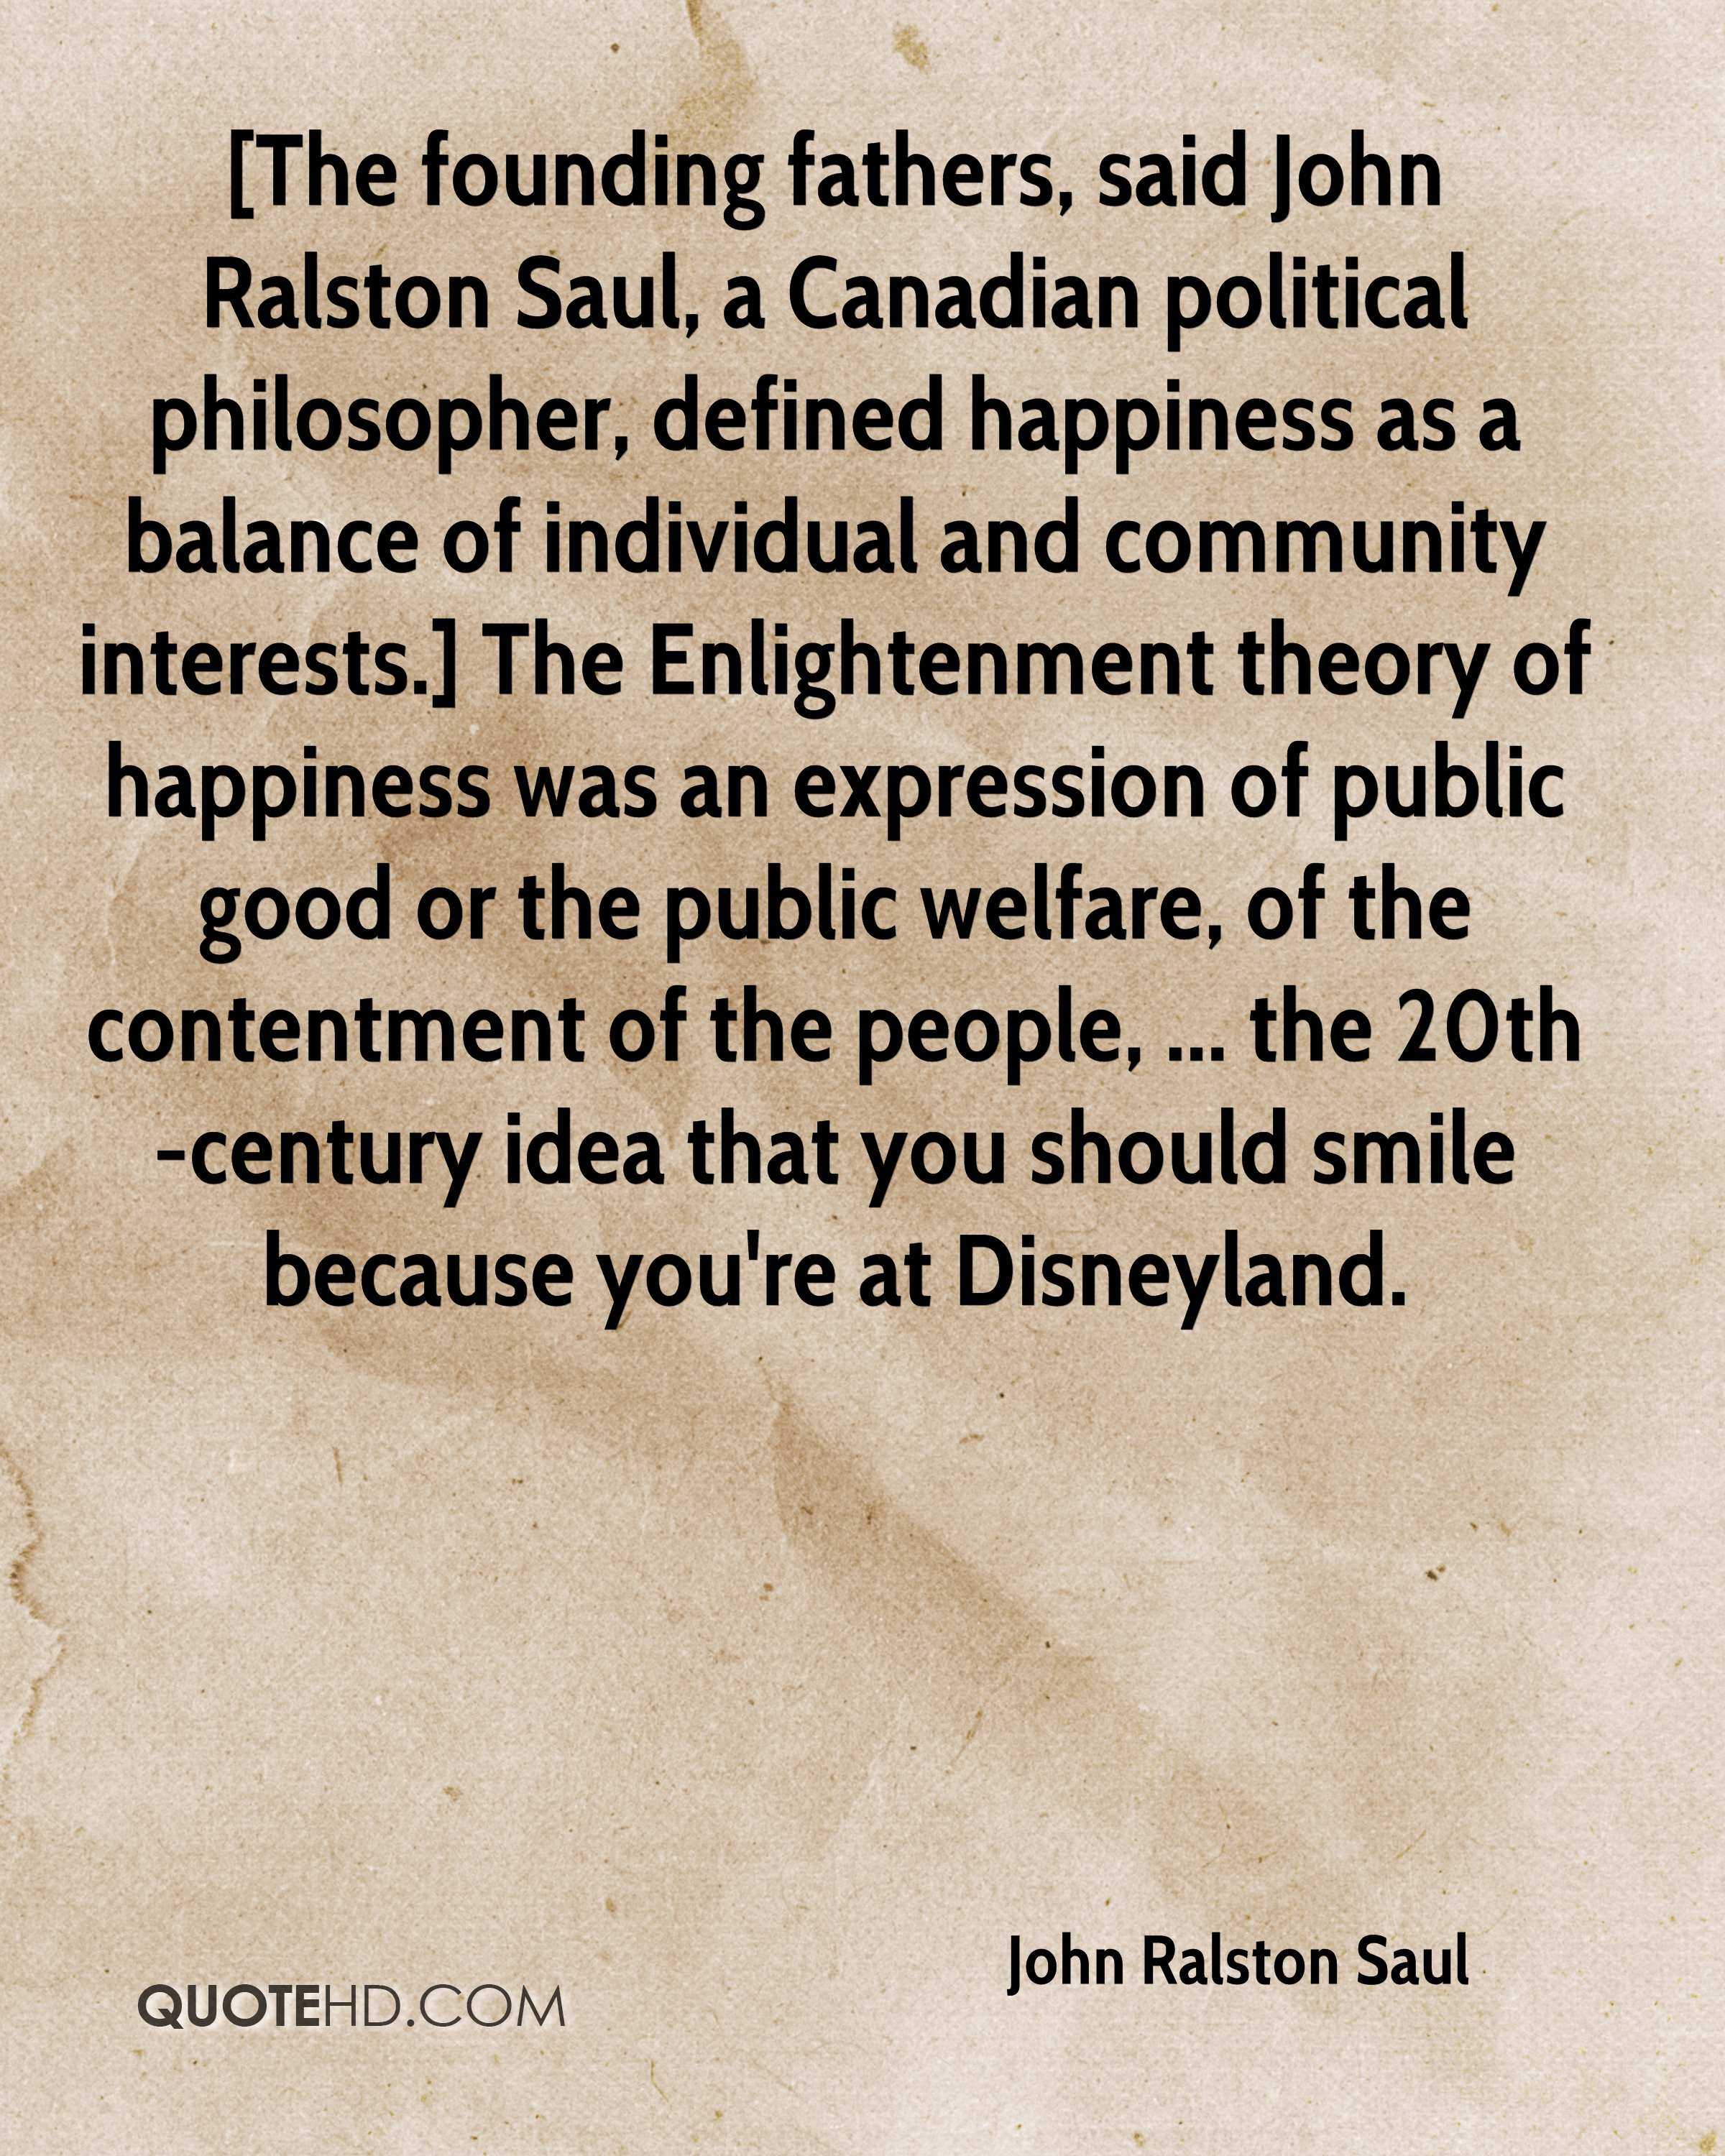 [The founding fathers, said John Ralston Saul, a Canadian political philosopher, defined happiness as a balance of individual and community interests.] The Enlightenment theory of happiness was an expression of public good or the public welfare, of the contentment of the people, ... the 20th-century idea that you should smile because you're at Disneyland.